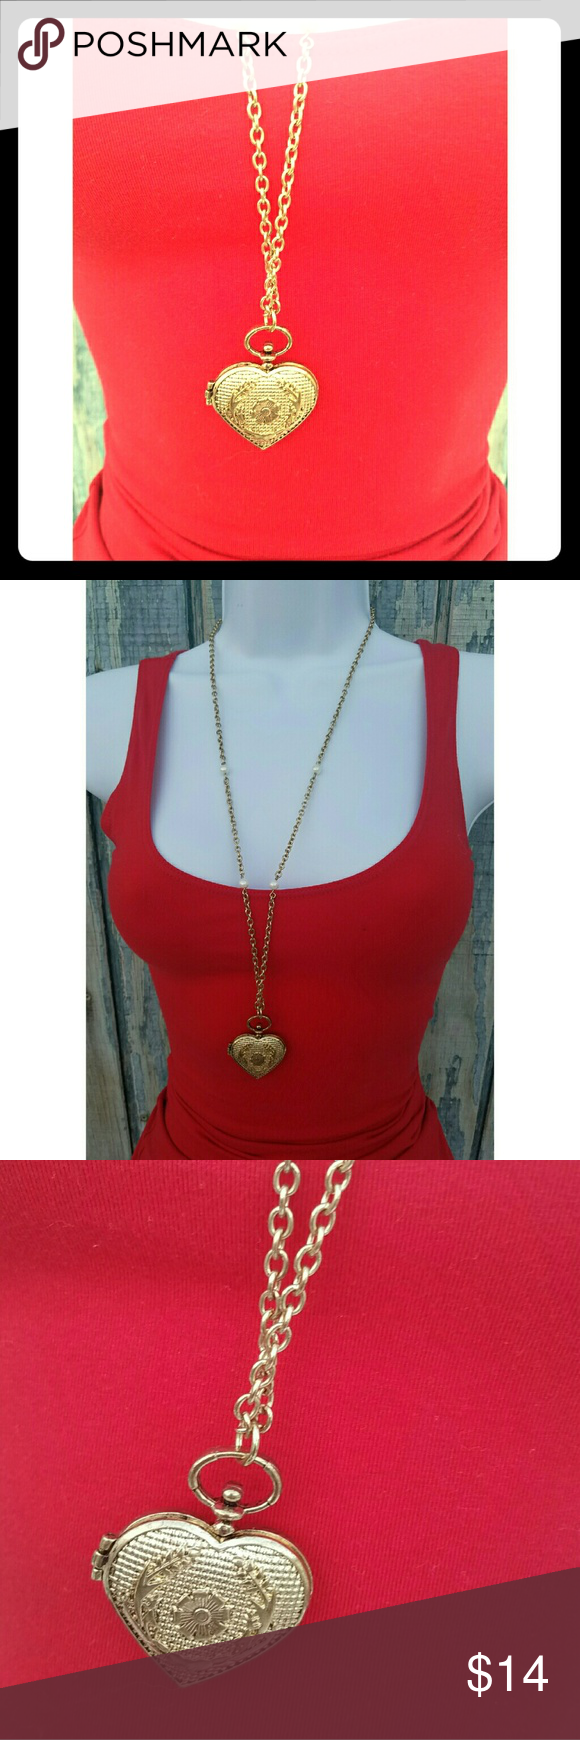 ☙24HR SALE☙ Vintage Gold Heart Pendant Necklace Vintage Gold Heart Shaped Pendant Necklace w/Pearls on chain. Jewelry Necklaces